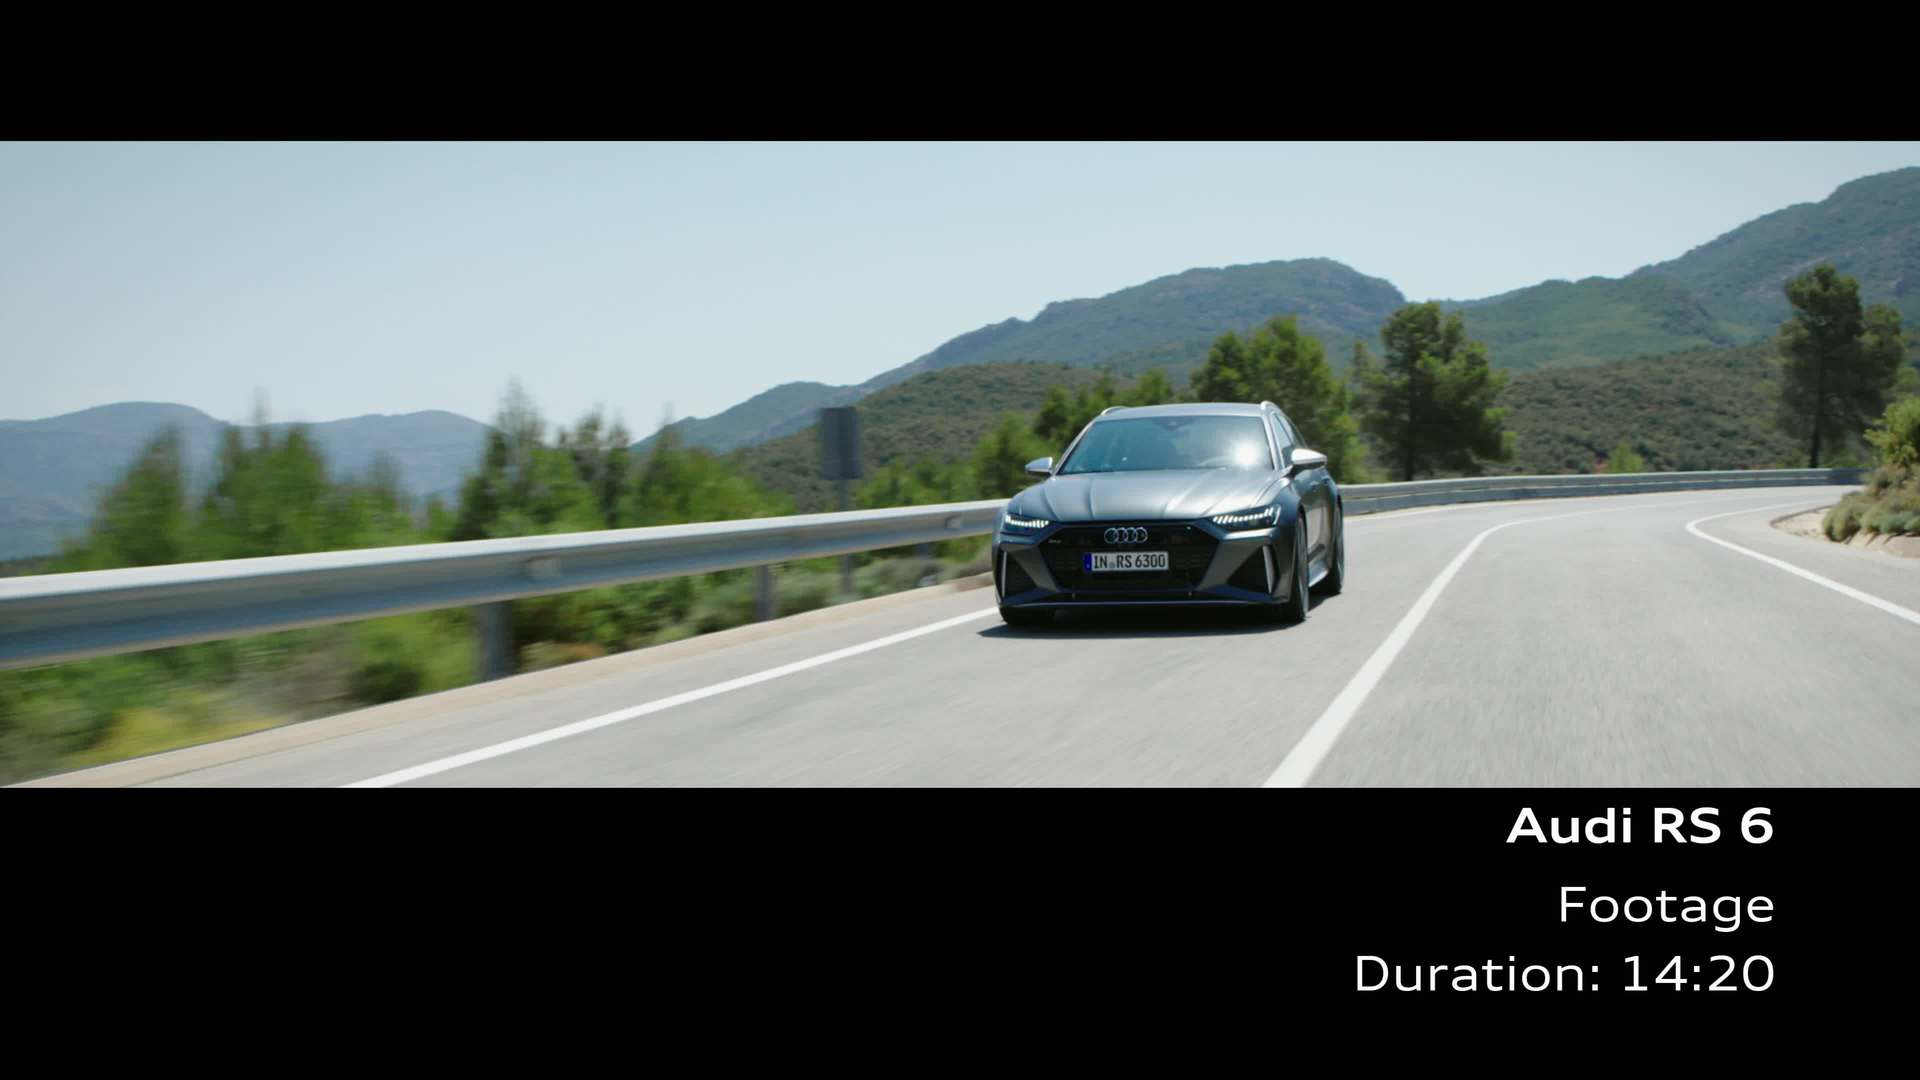 Audi RS 6 (Footage dynamisch)